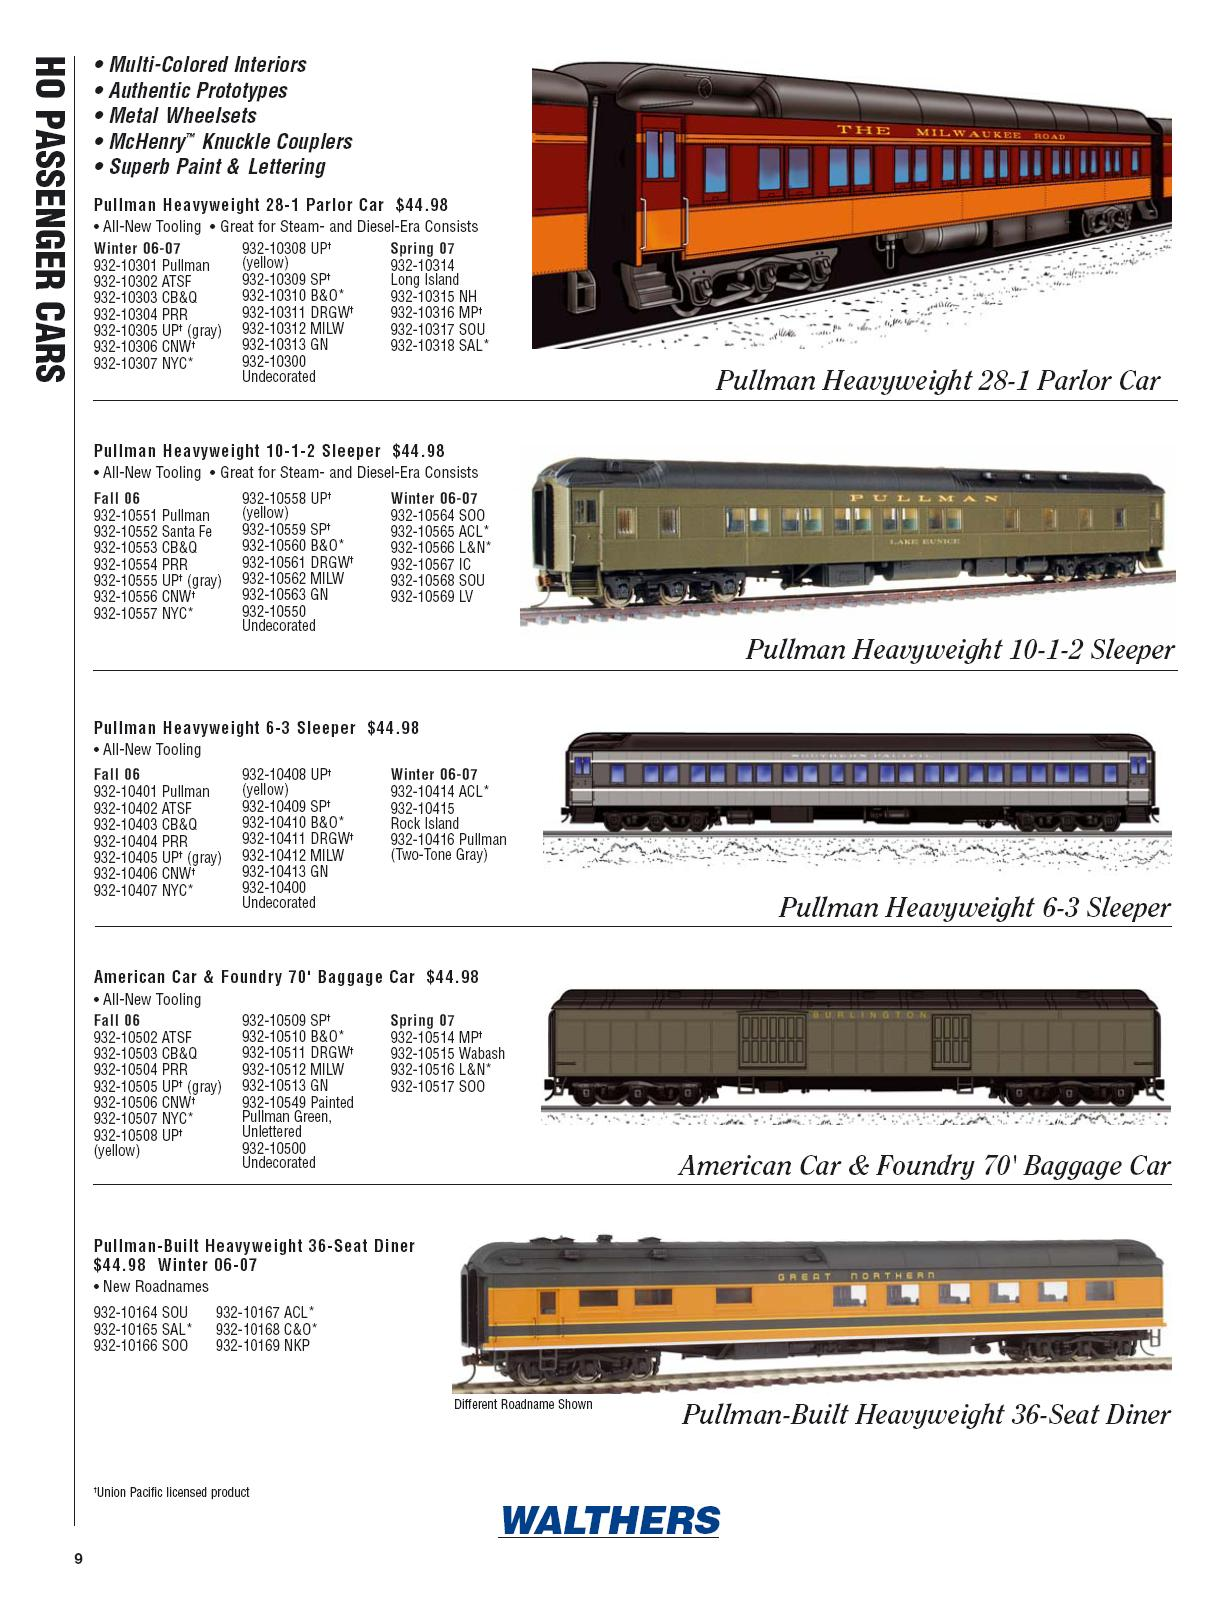 Walthers 2006 Cataloge Passenger page 1